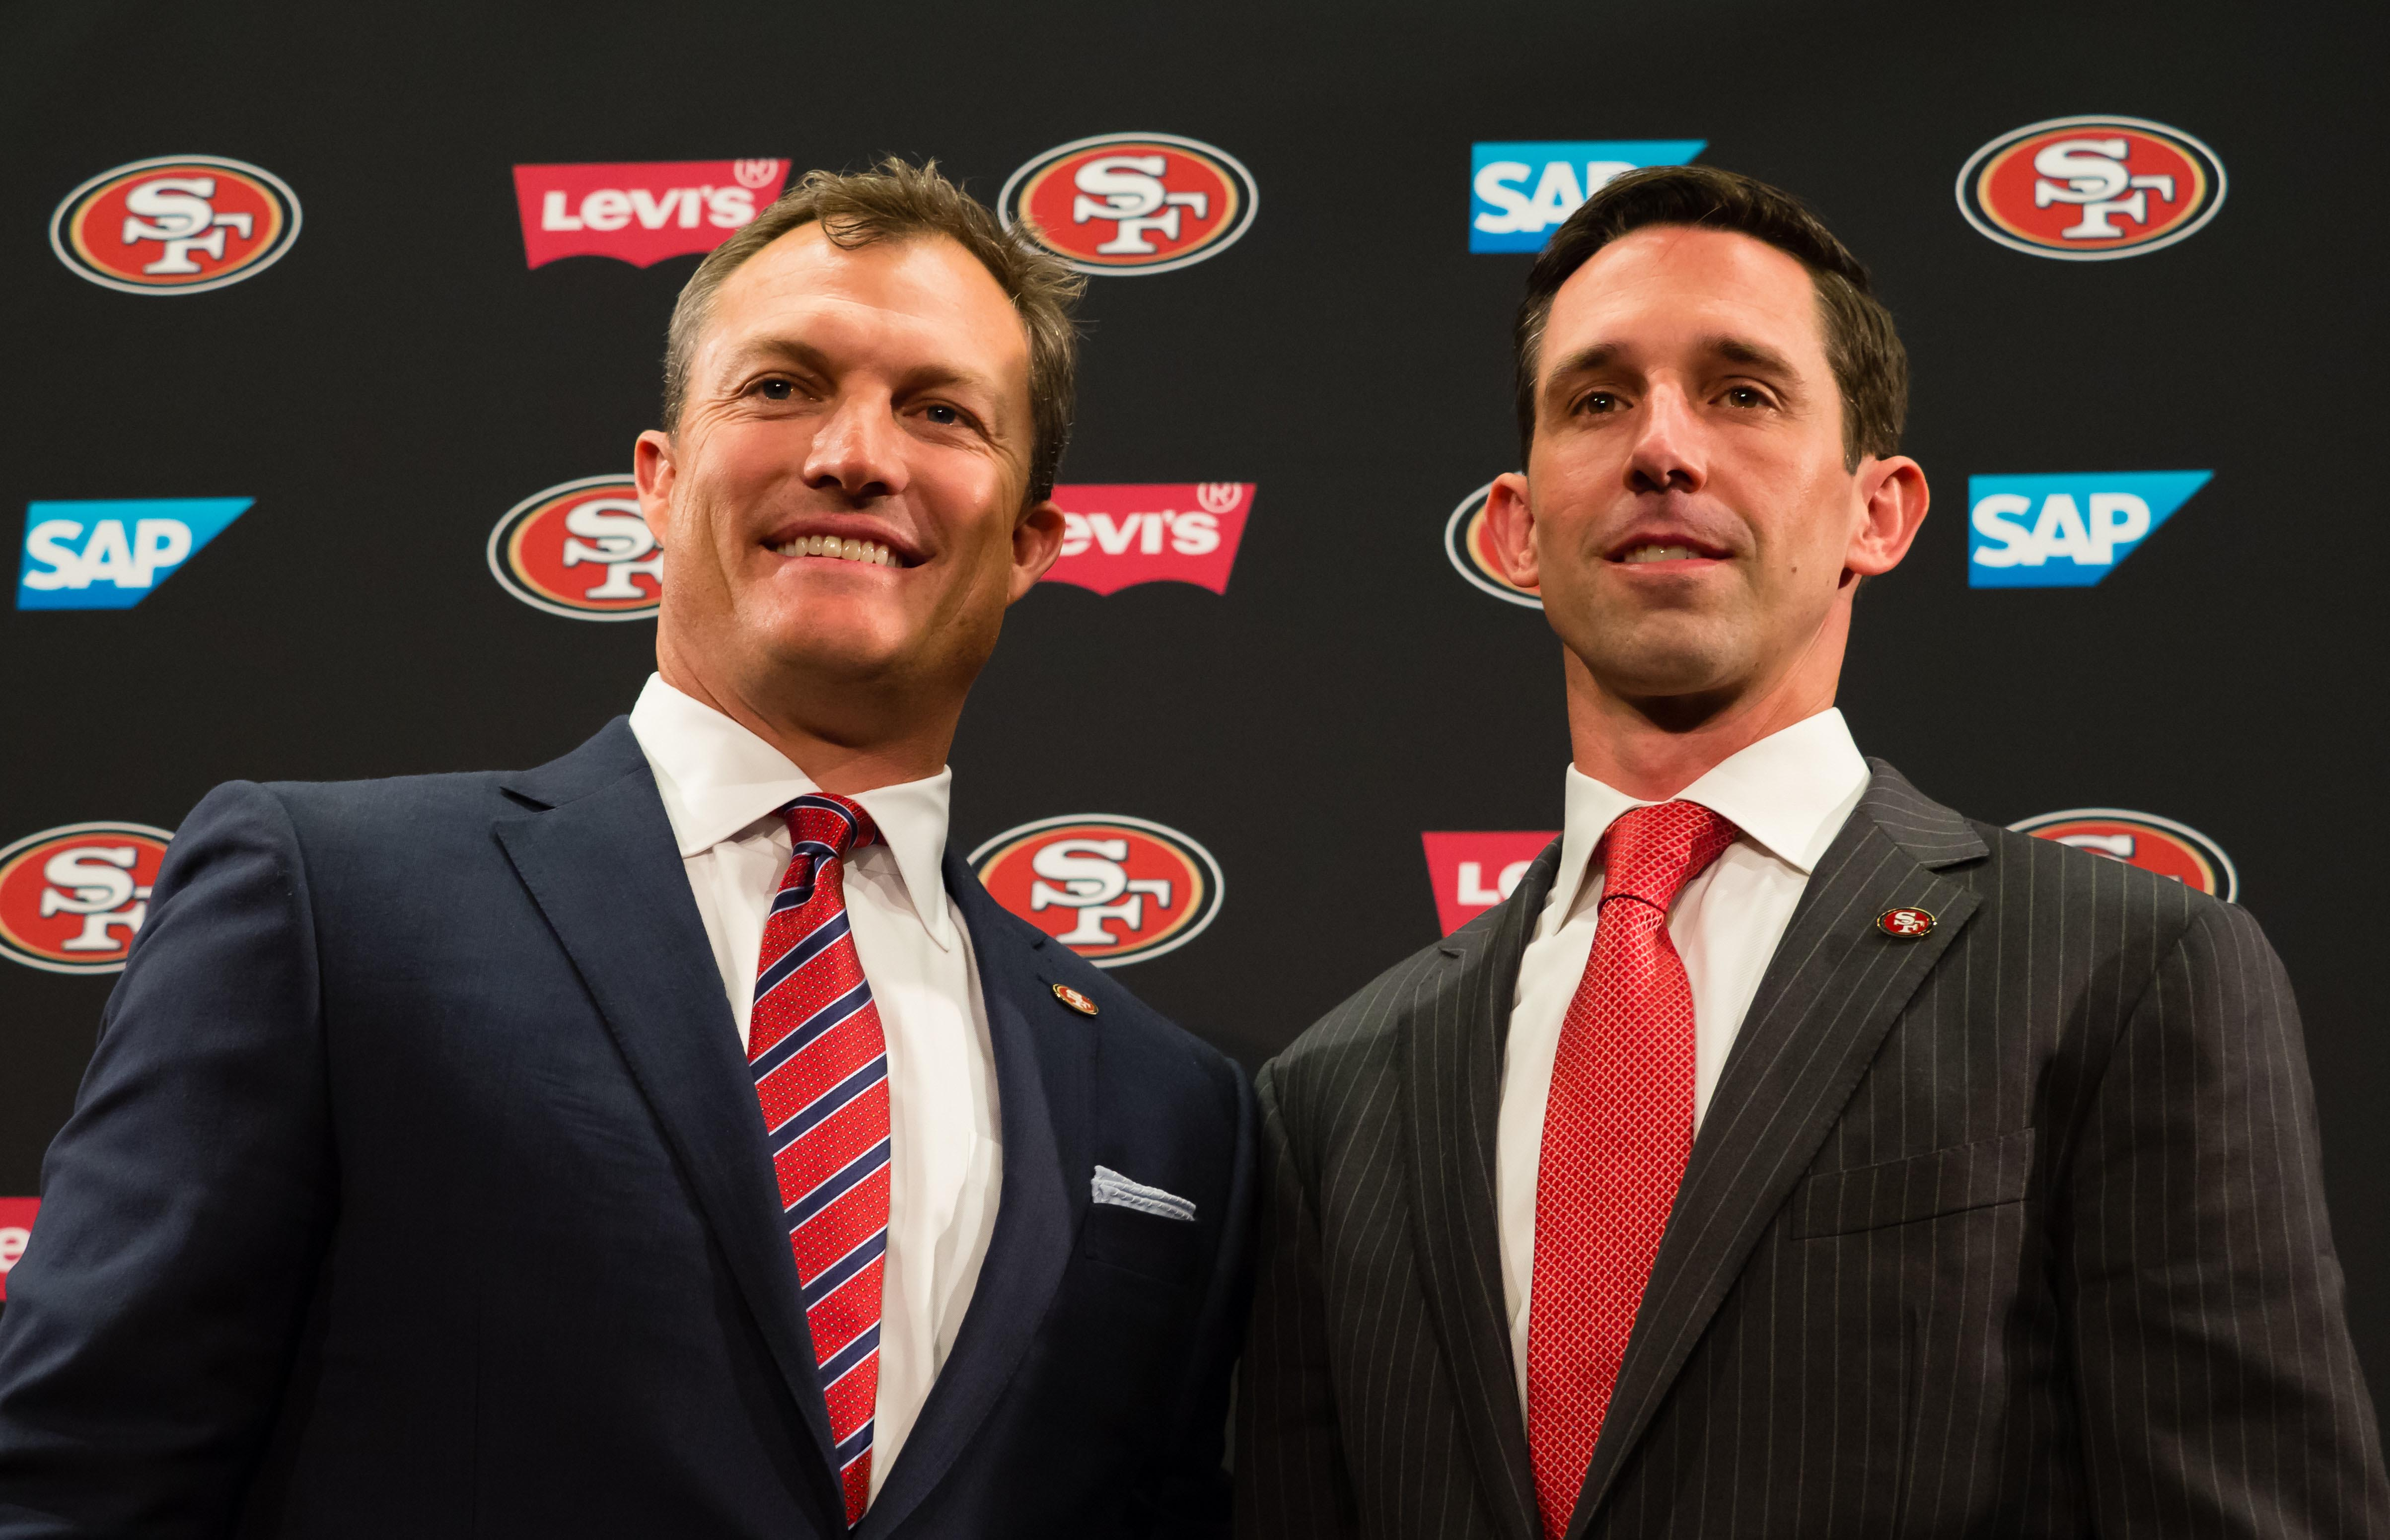 9868042-nfl-san-francisco-49ers-press-conference